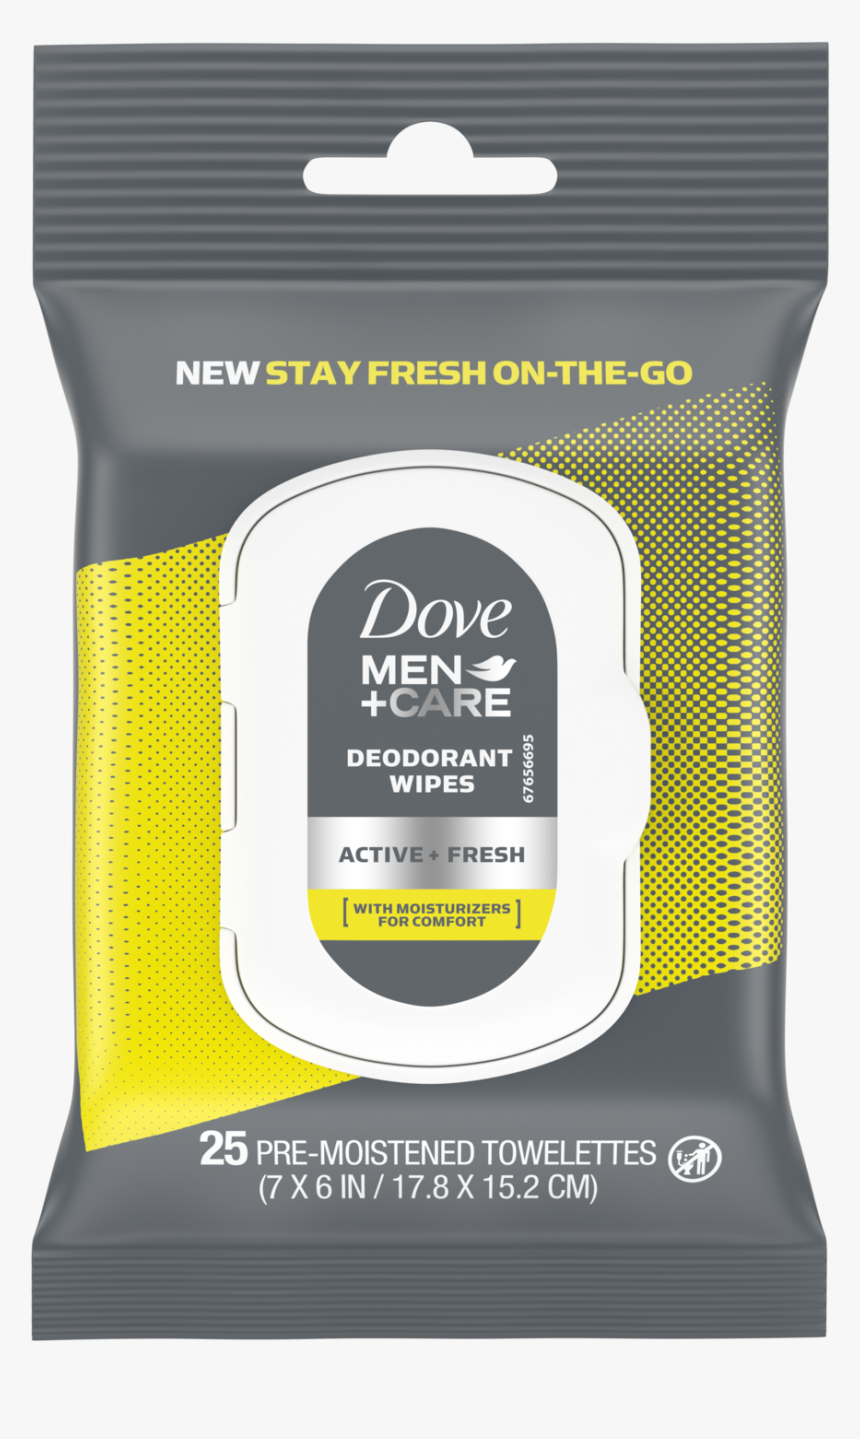 Dove Men Care Deodorant Wipes Active Fresh 25ct Front - Dove Men Deodorant Wipes, HD Png Download, Free Download